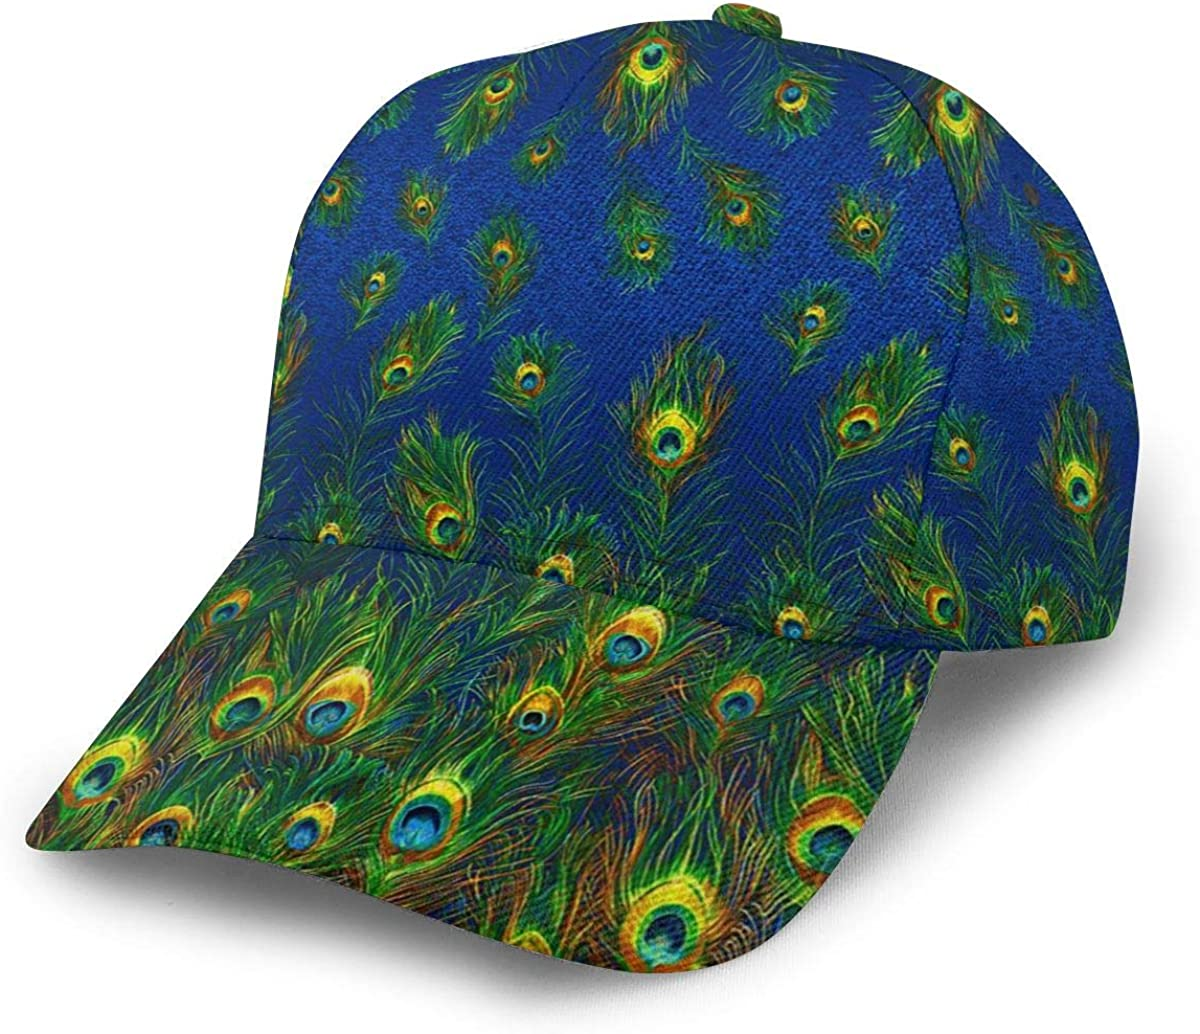 Baseball Cap Blue Peacock Feathers Print Dad Caps Hat Circular Top Classic Fashion Casual Adjustable Sport for Women Hats